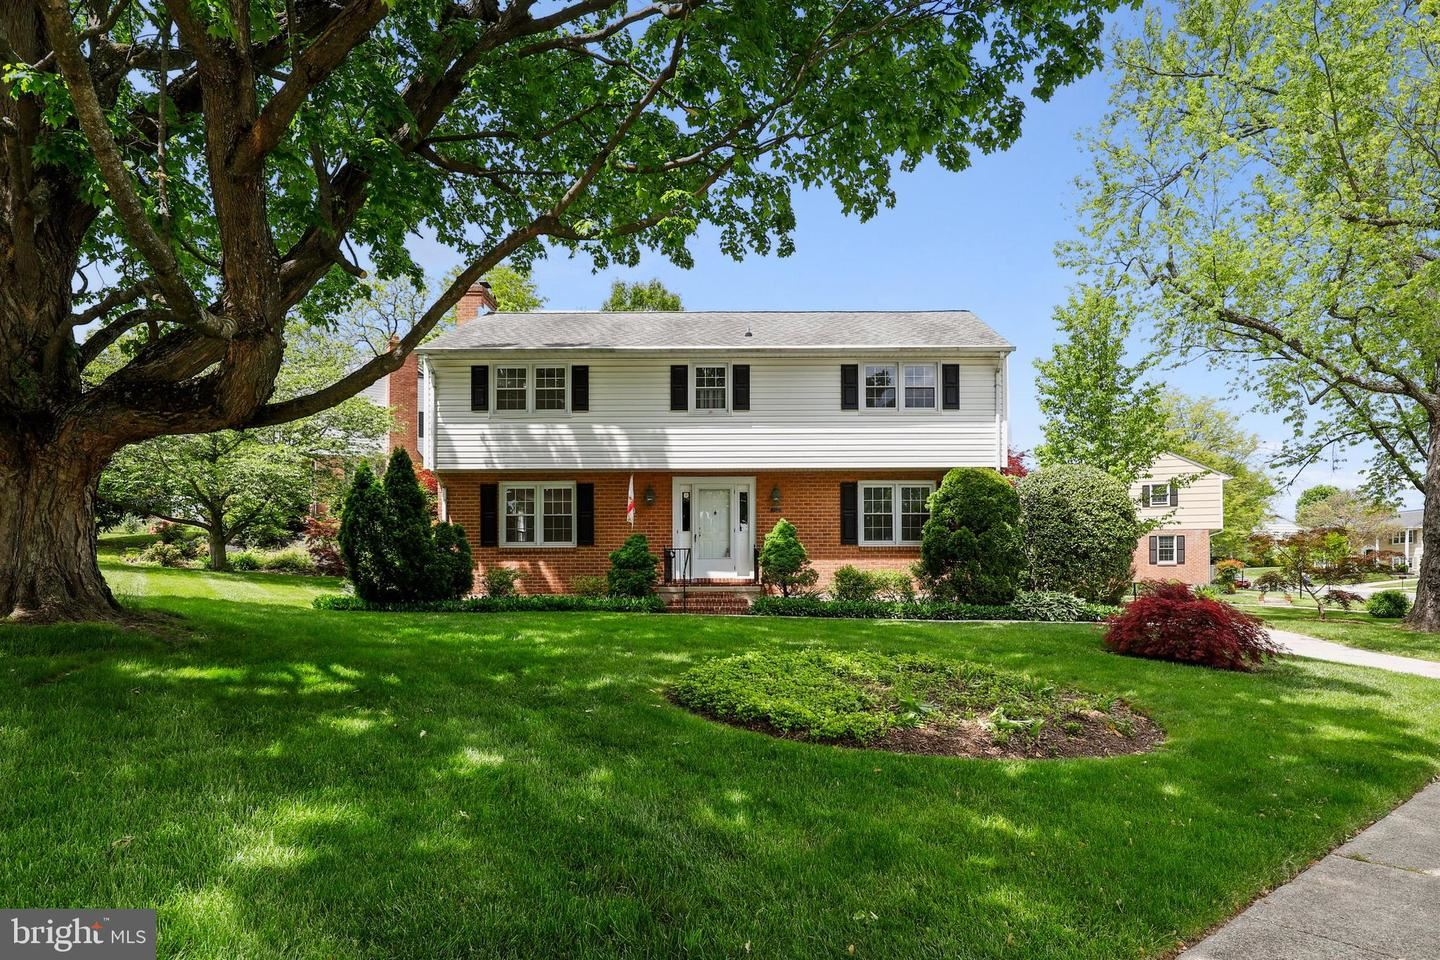 8200 CARRBRIDGE CIR, Towson, MD 21204 - MLS#: MDBC529086